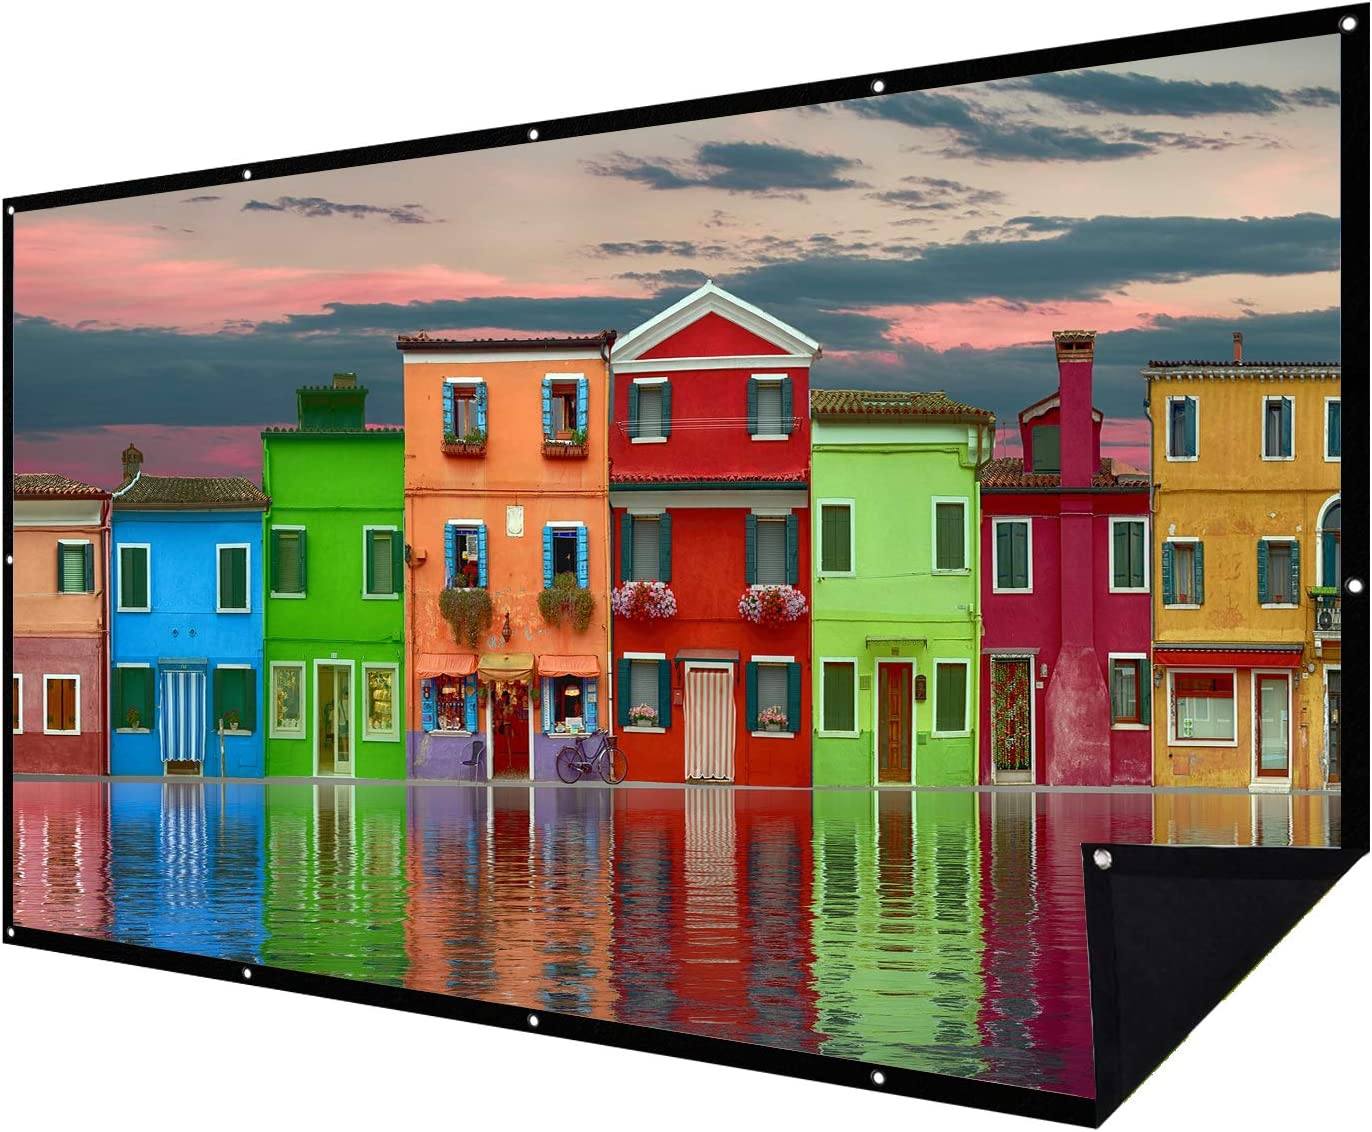 Double Layer Projector Screen 100 inch 16:9 Portable Projection Movie Screen 3D with No Light Transmission for Home Theater Outdoor Indoor Office with 15 Nails No Crease